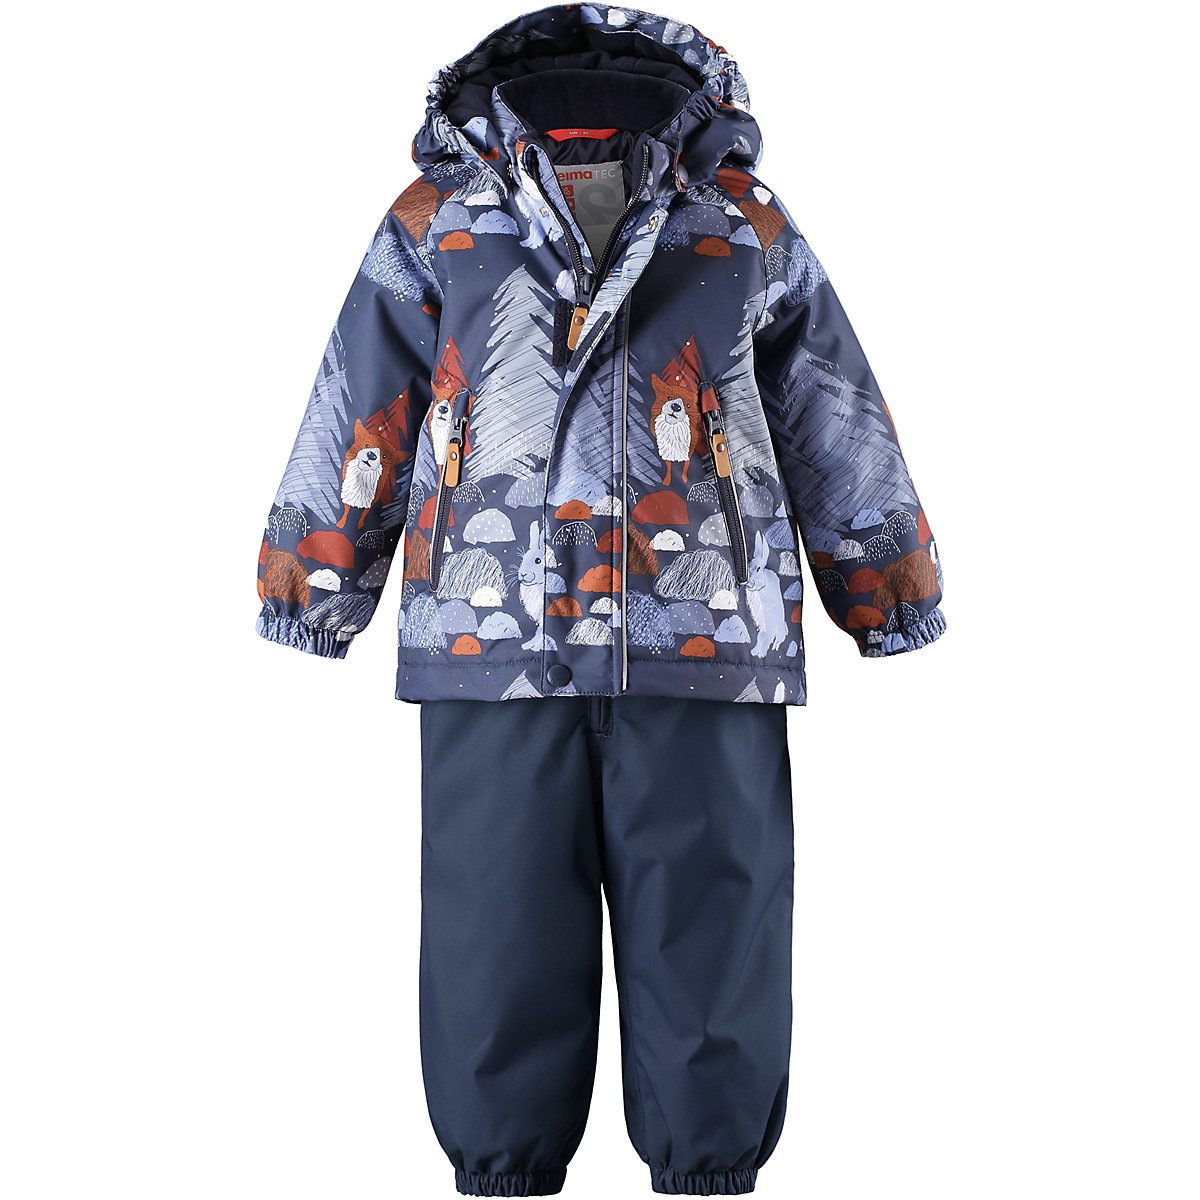 REIMA Babys Sets 8688723 for boys Polyester Baby Kit boy Jacket and pants